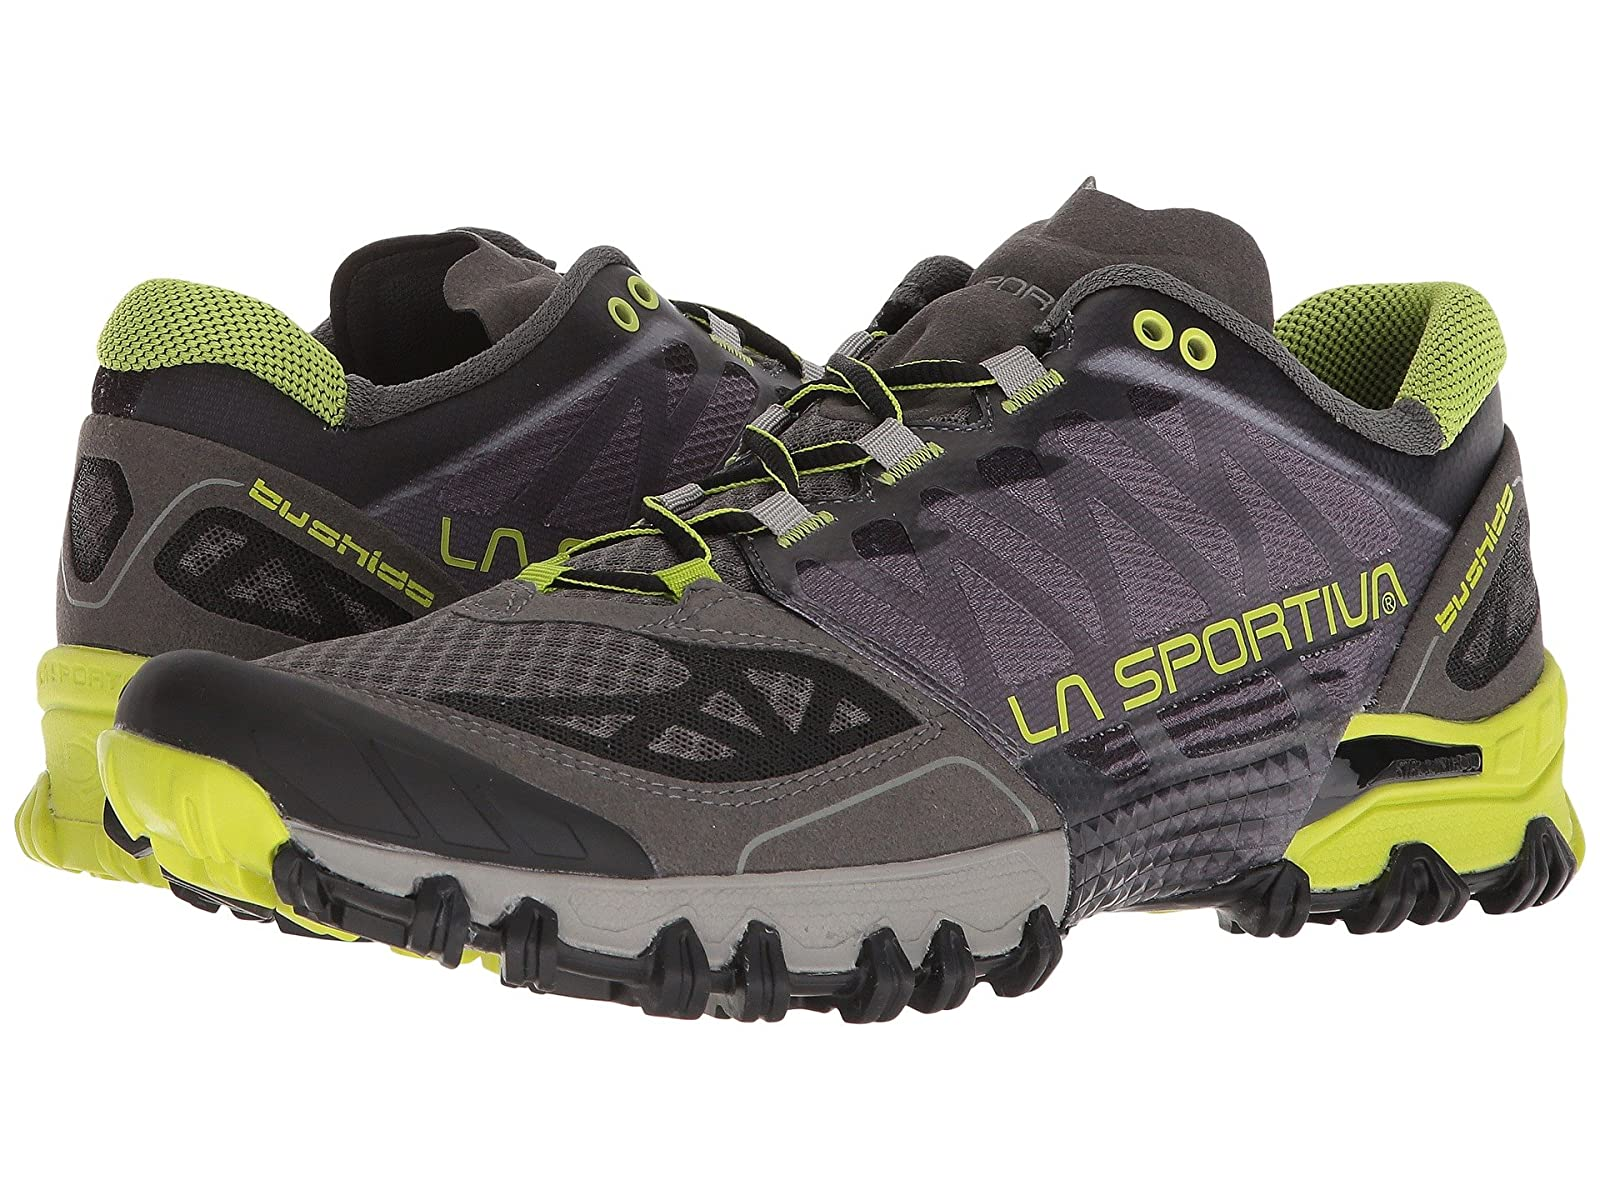 La Sportiva BushidoAtmospheric grades have affordable shoes